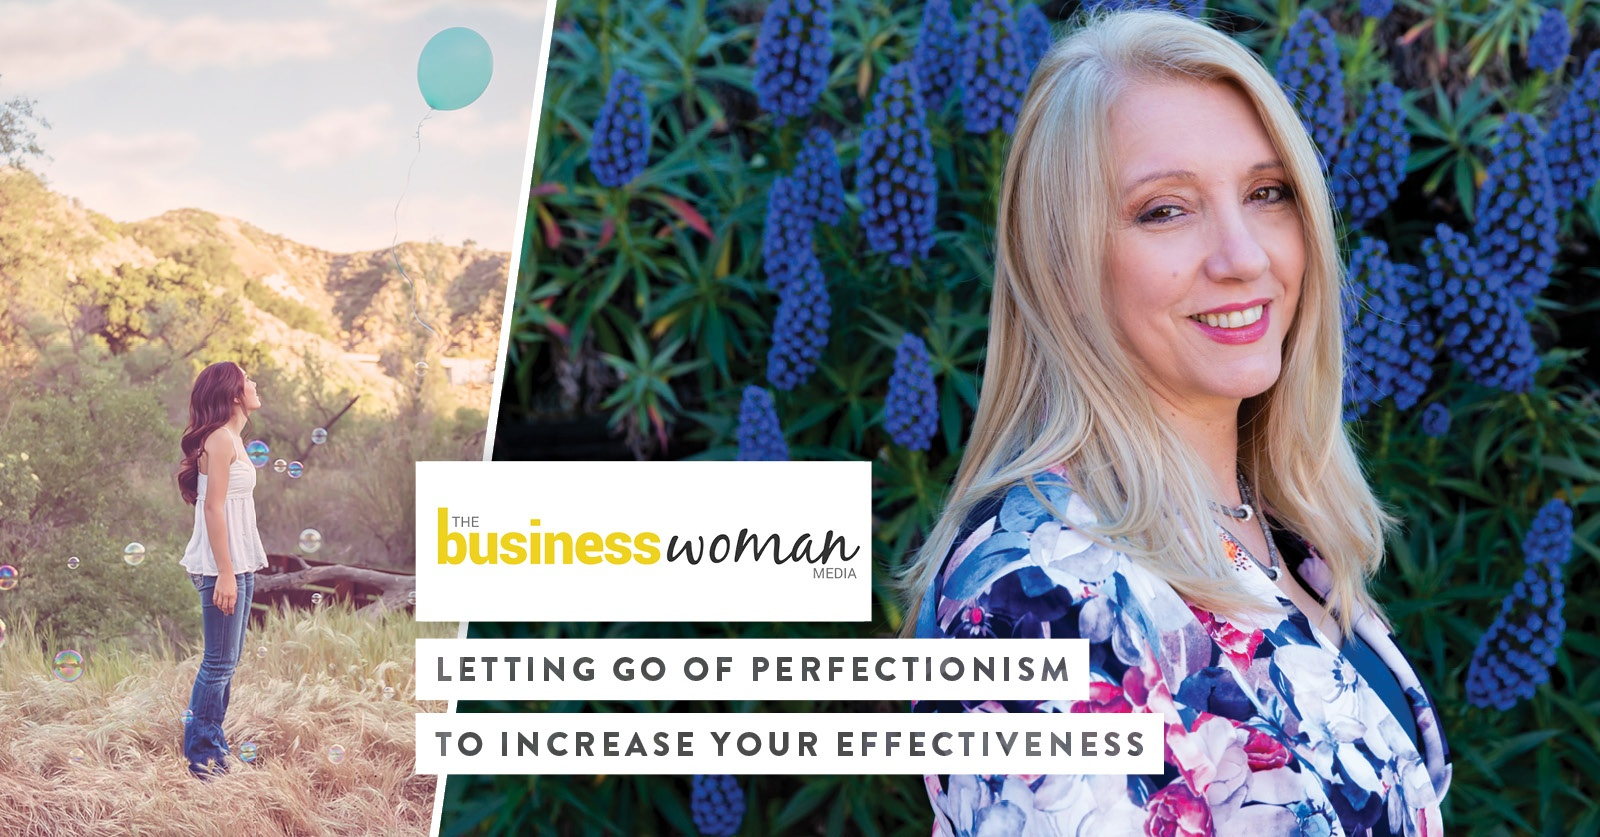 Business Woman Media: Letting go of perfectionism to increase your effectiveness